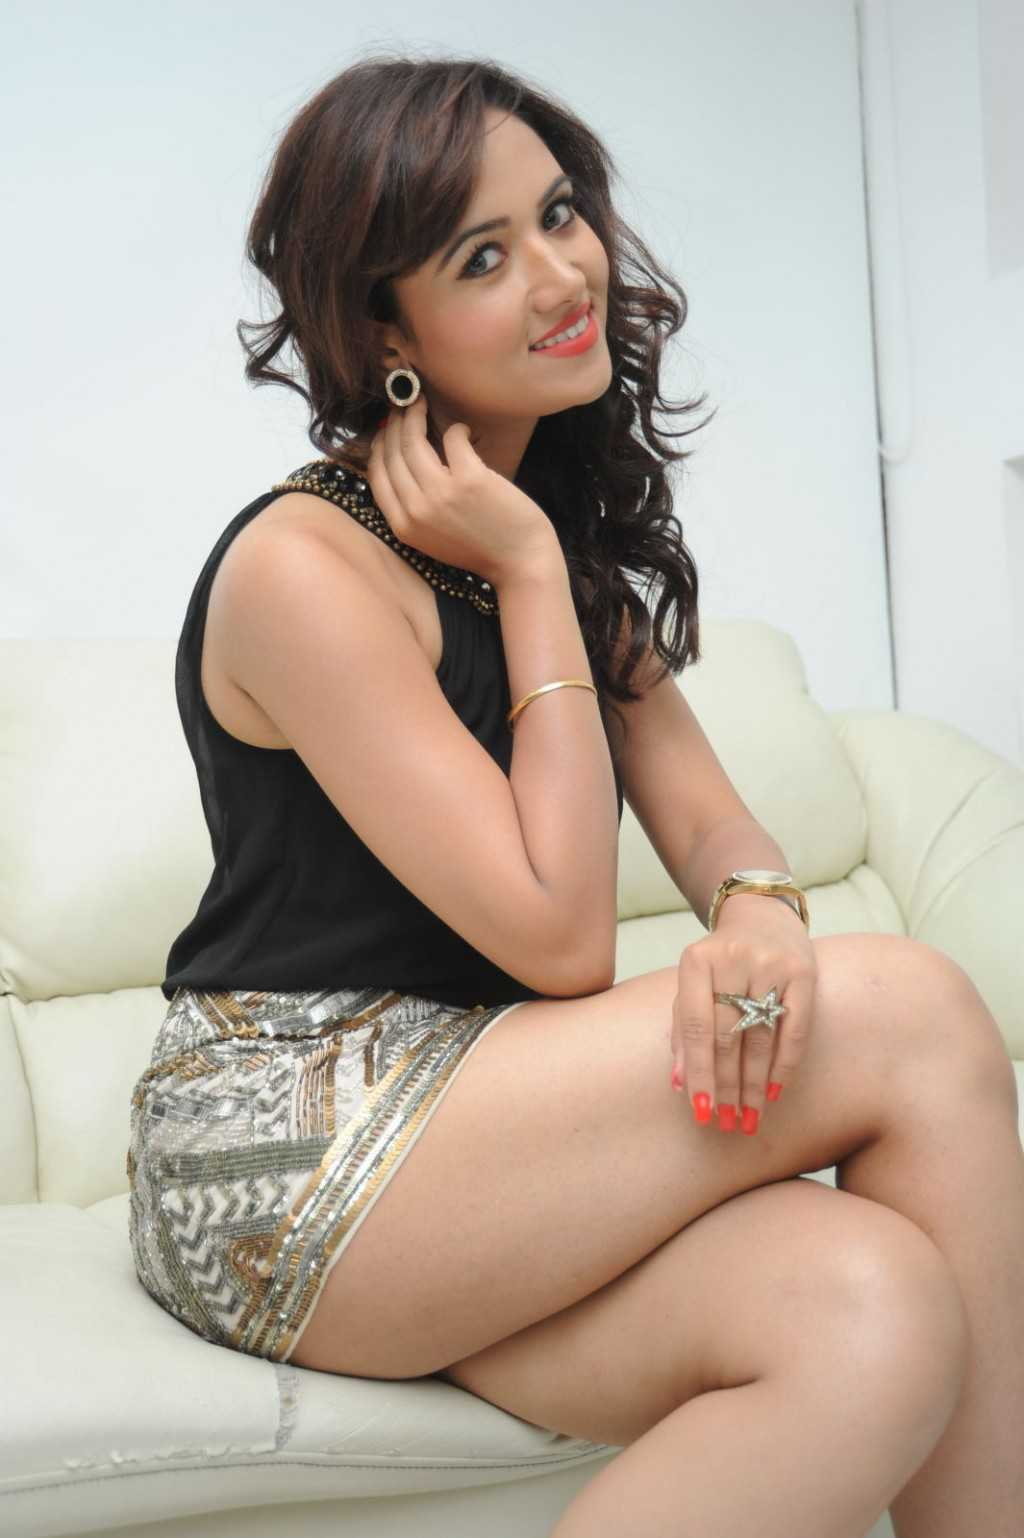 South-Indian-Actress-Preeti-Rana-Hot-Thigh-Show-Photos-14